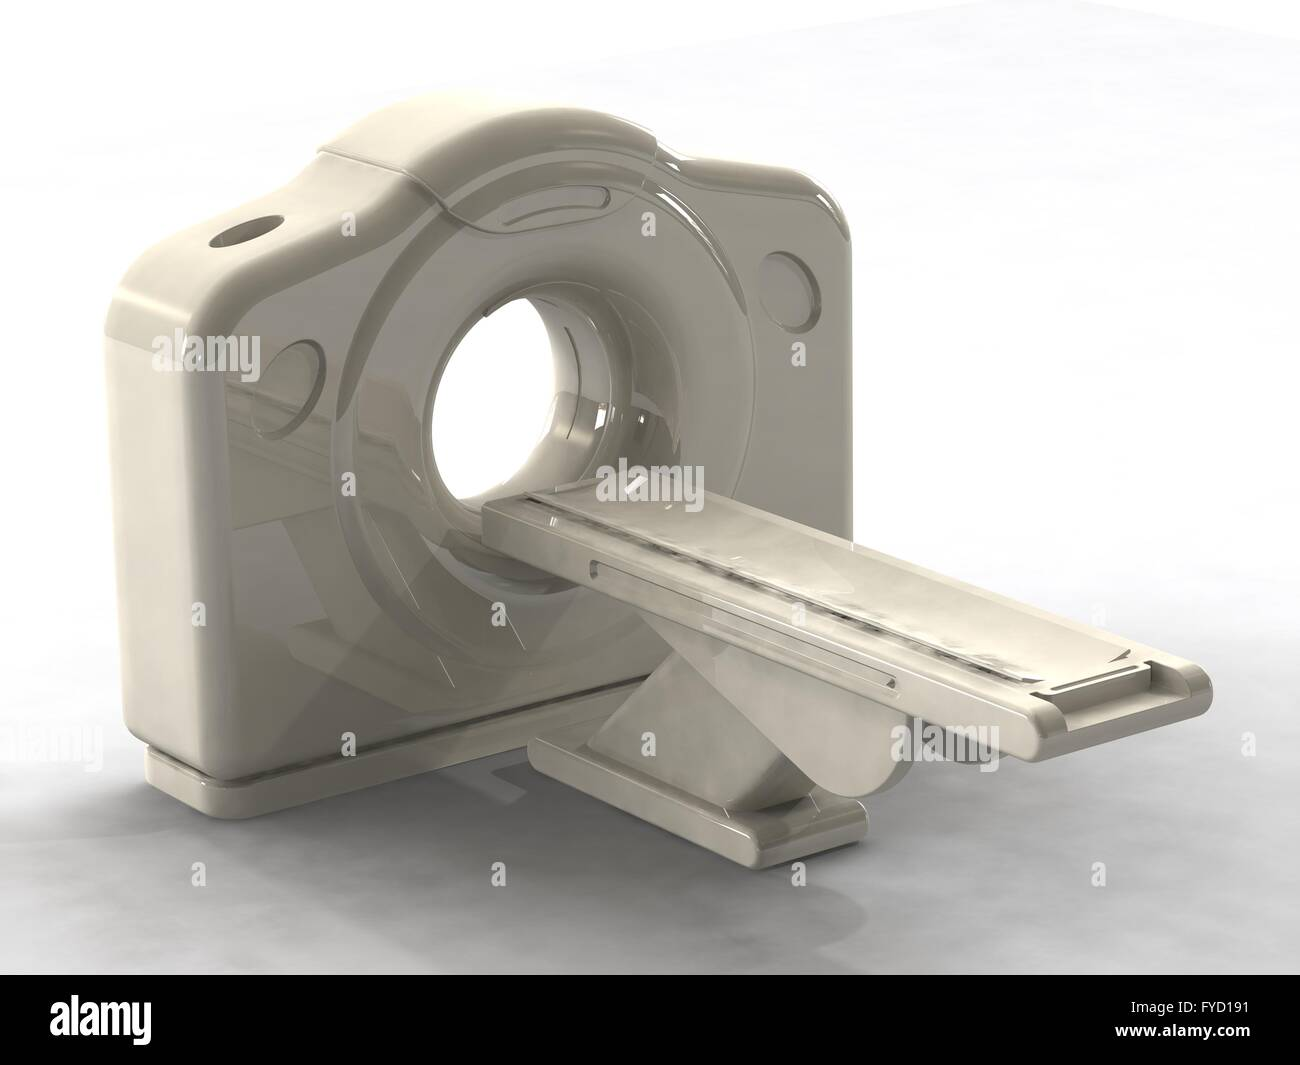 computed axial tomography ct or cat scanner - Stock Image